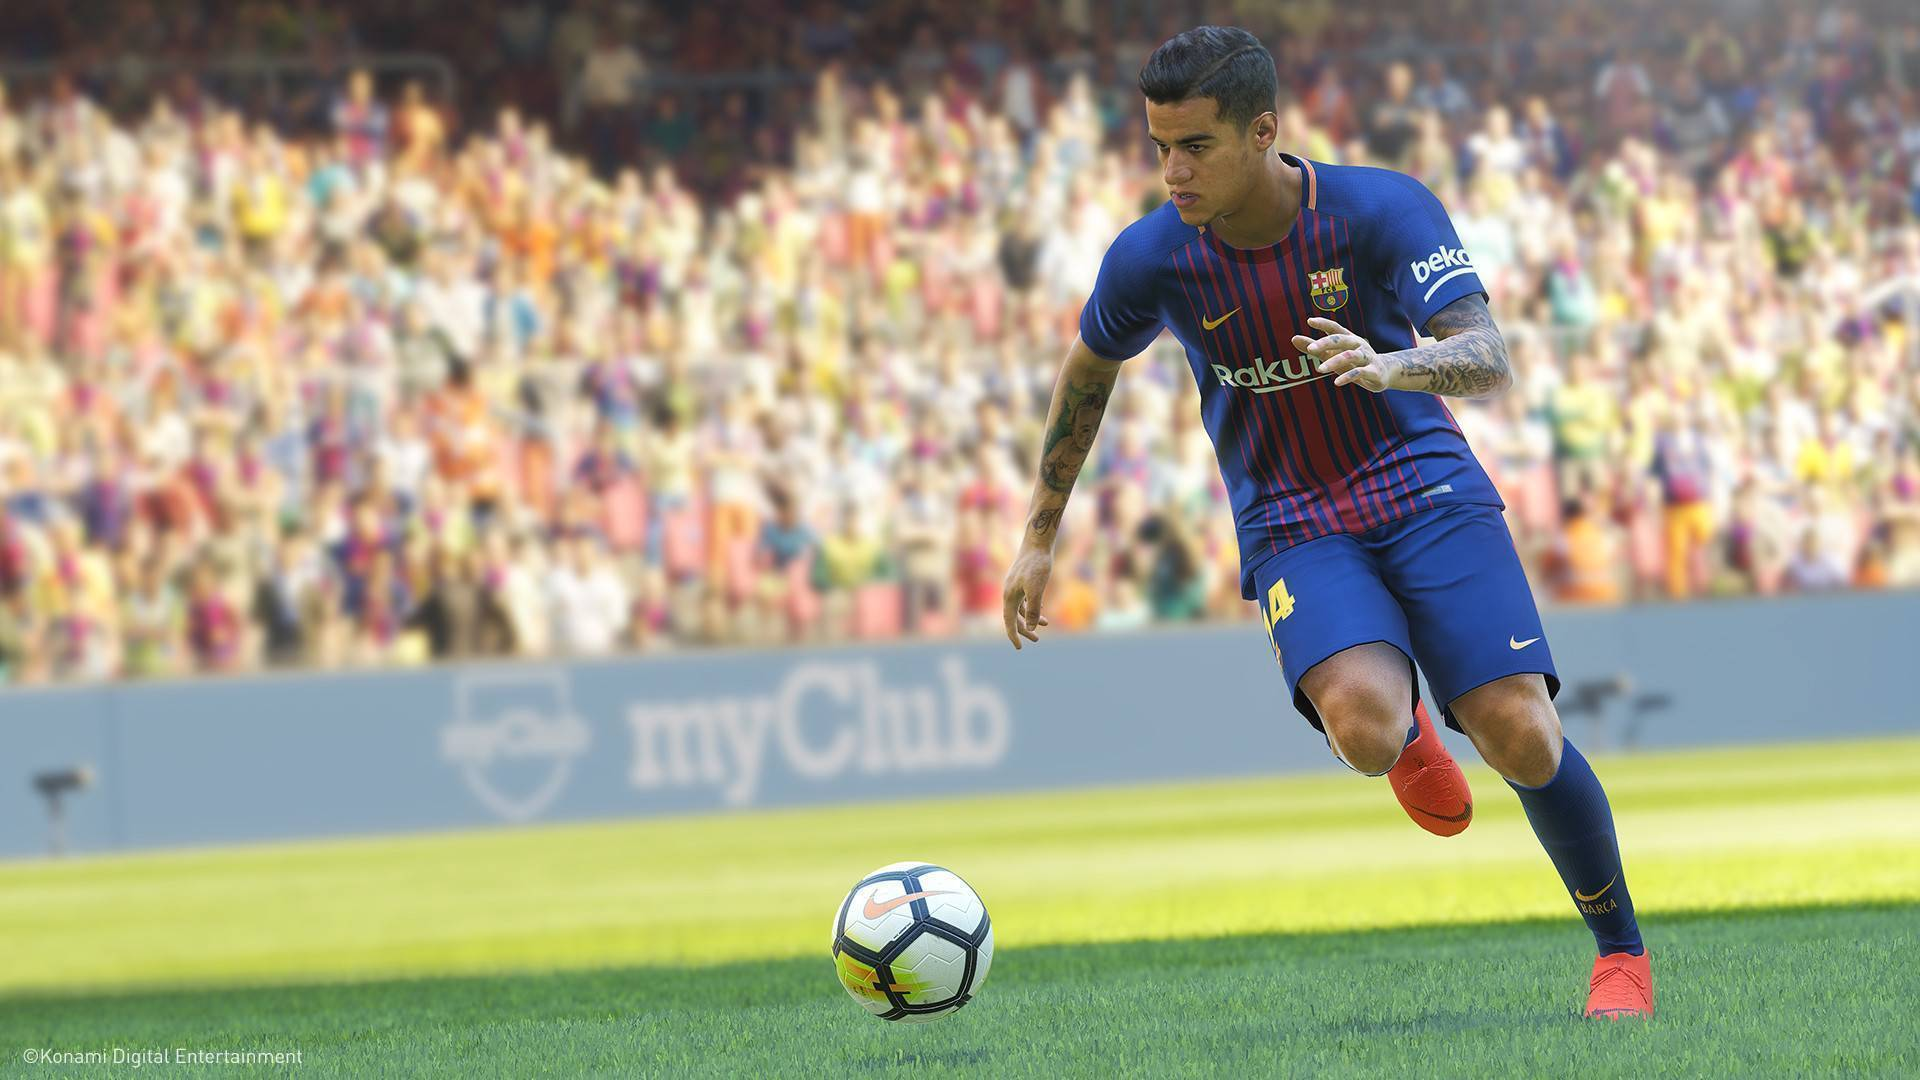 Buy PRO EVOLUTION SOCCER 2019 - PES 2019 PS4 - compare prices c8f8d66ad6be7